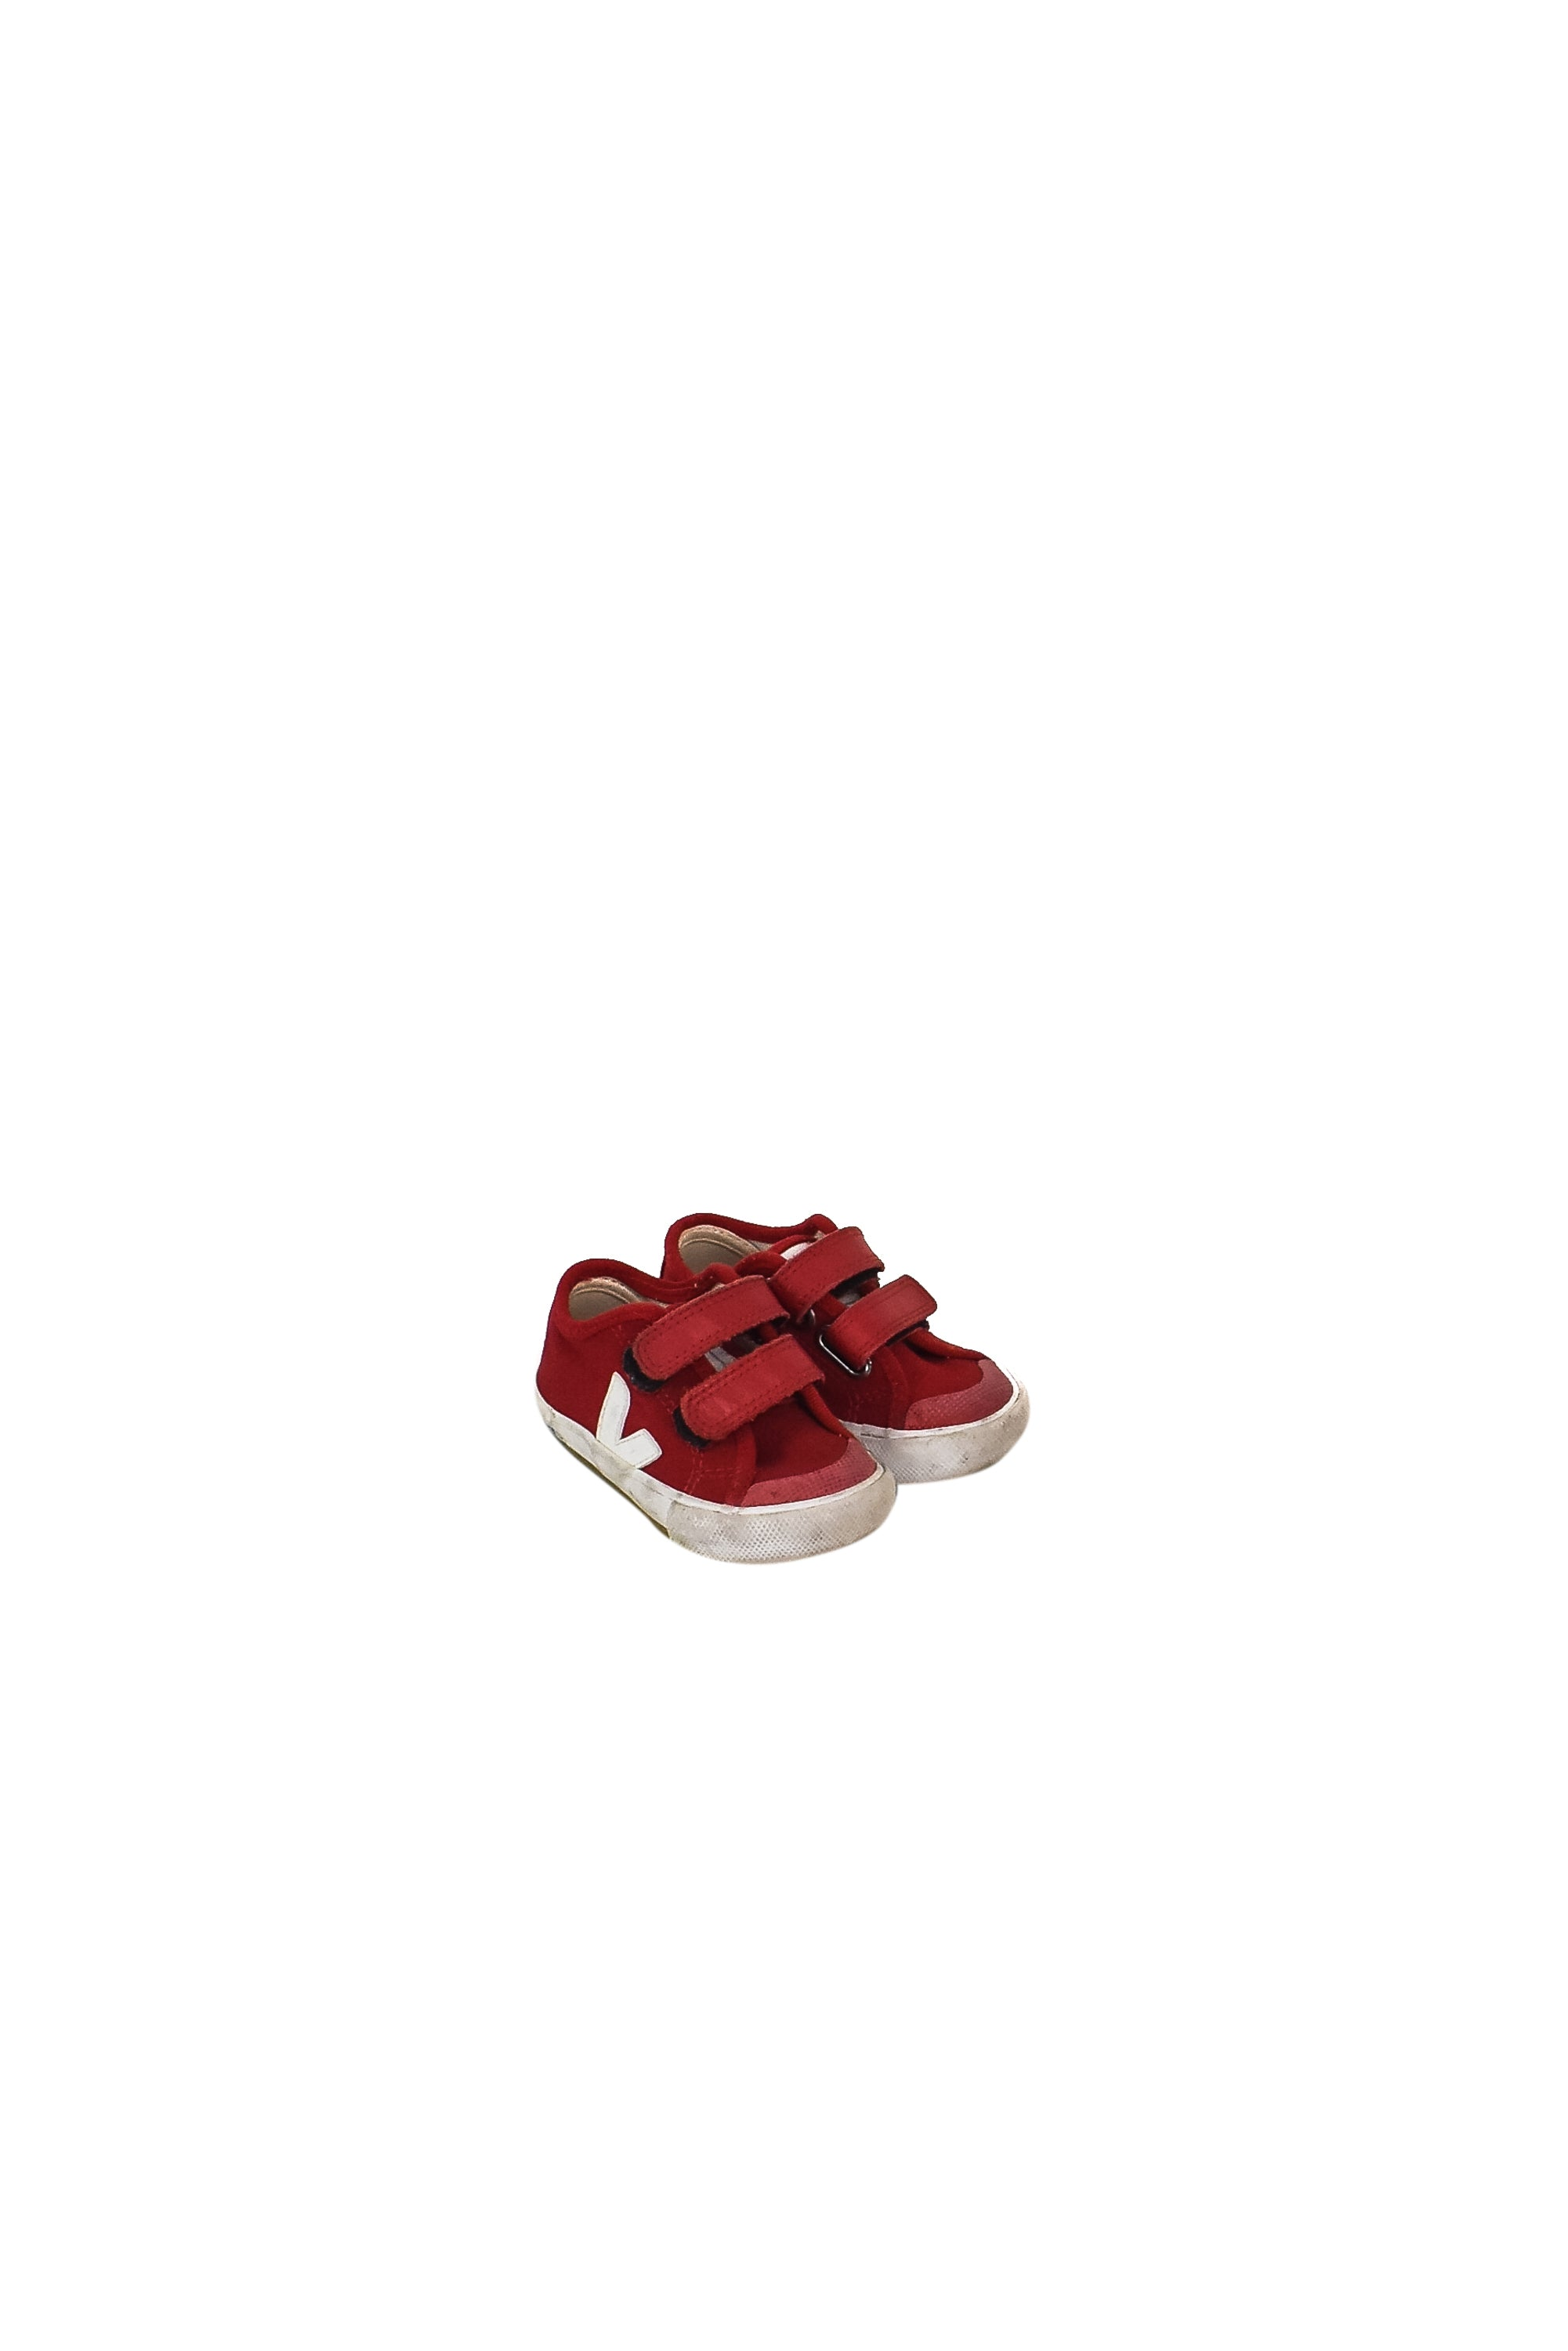 10033392 Veja Baby~Shoes 18-24M (EU 22) at Retykle